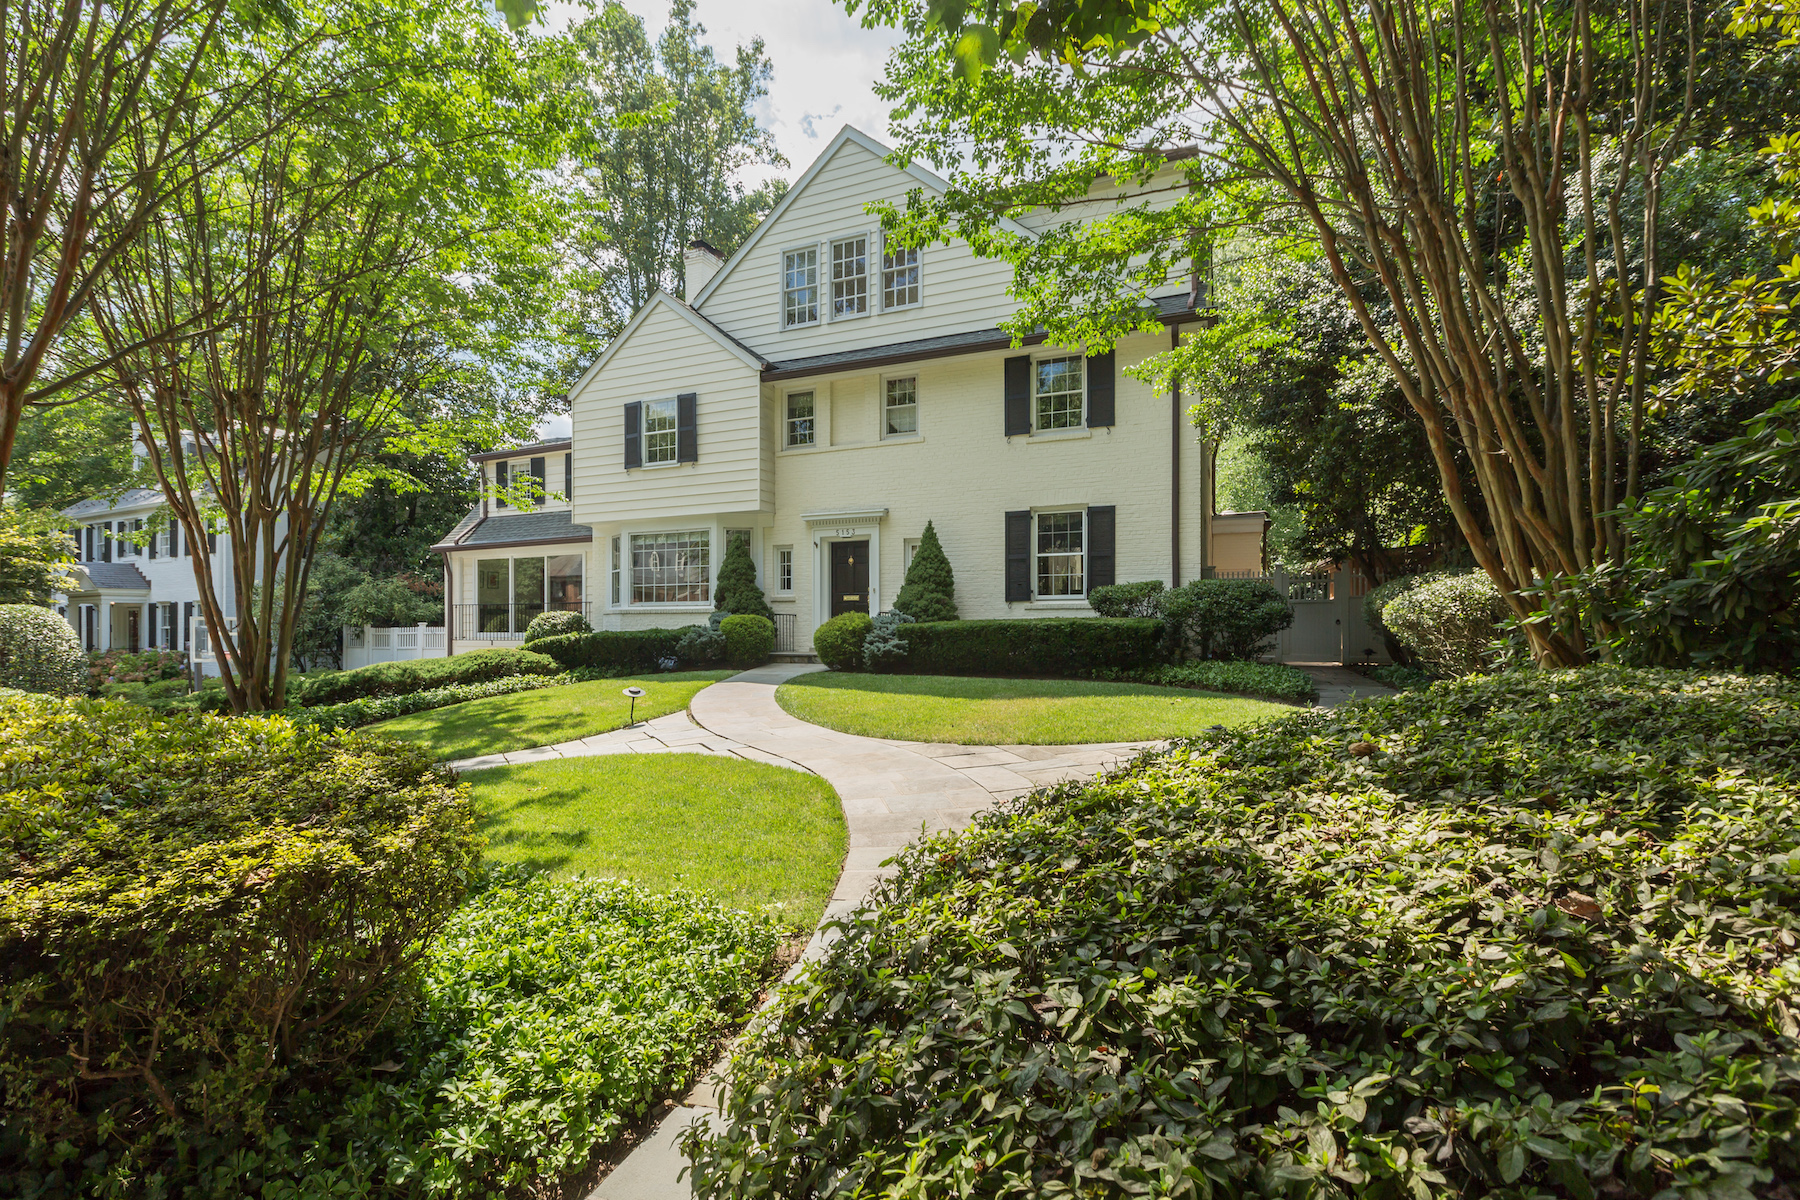 Single Family Home for Sale at 5153 Tilden Street 5153 Tilden Street Nw Washington, District Of Columbia 20016 United States